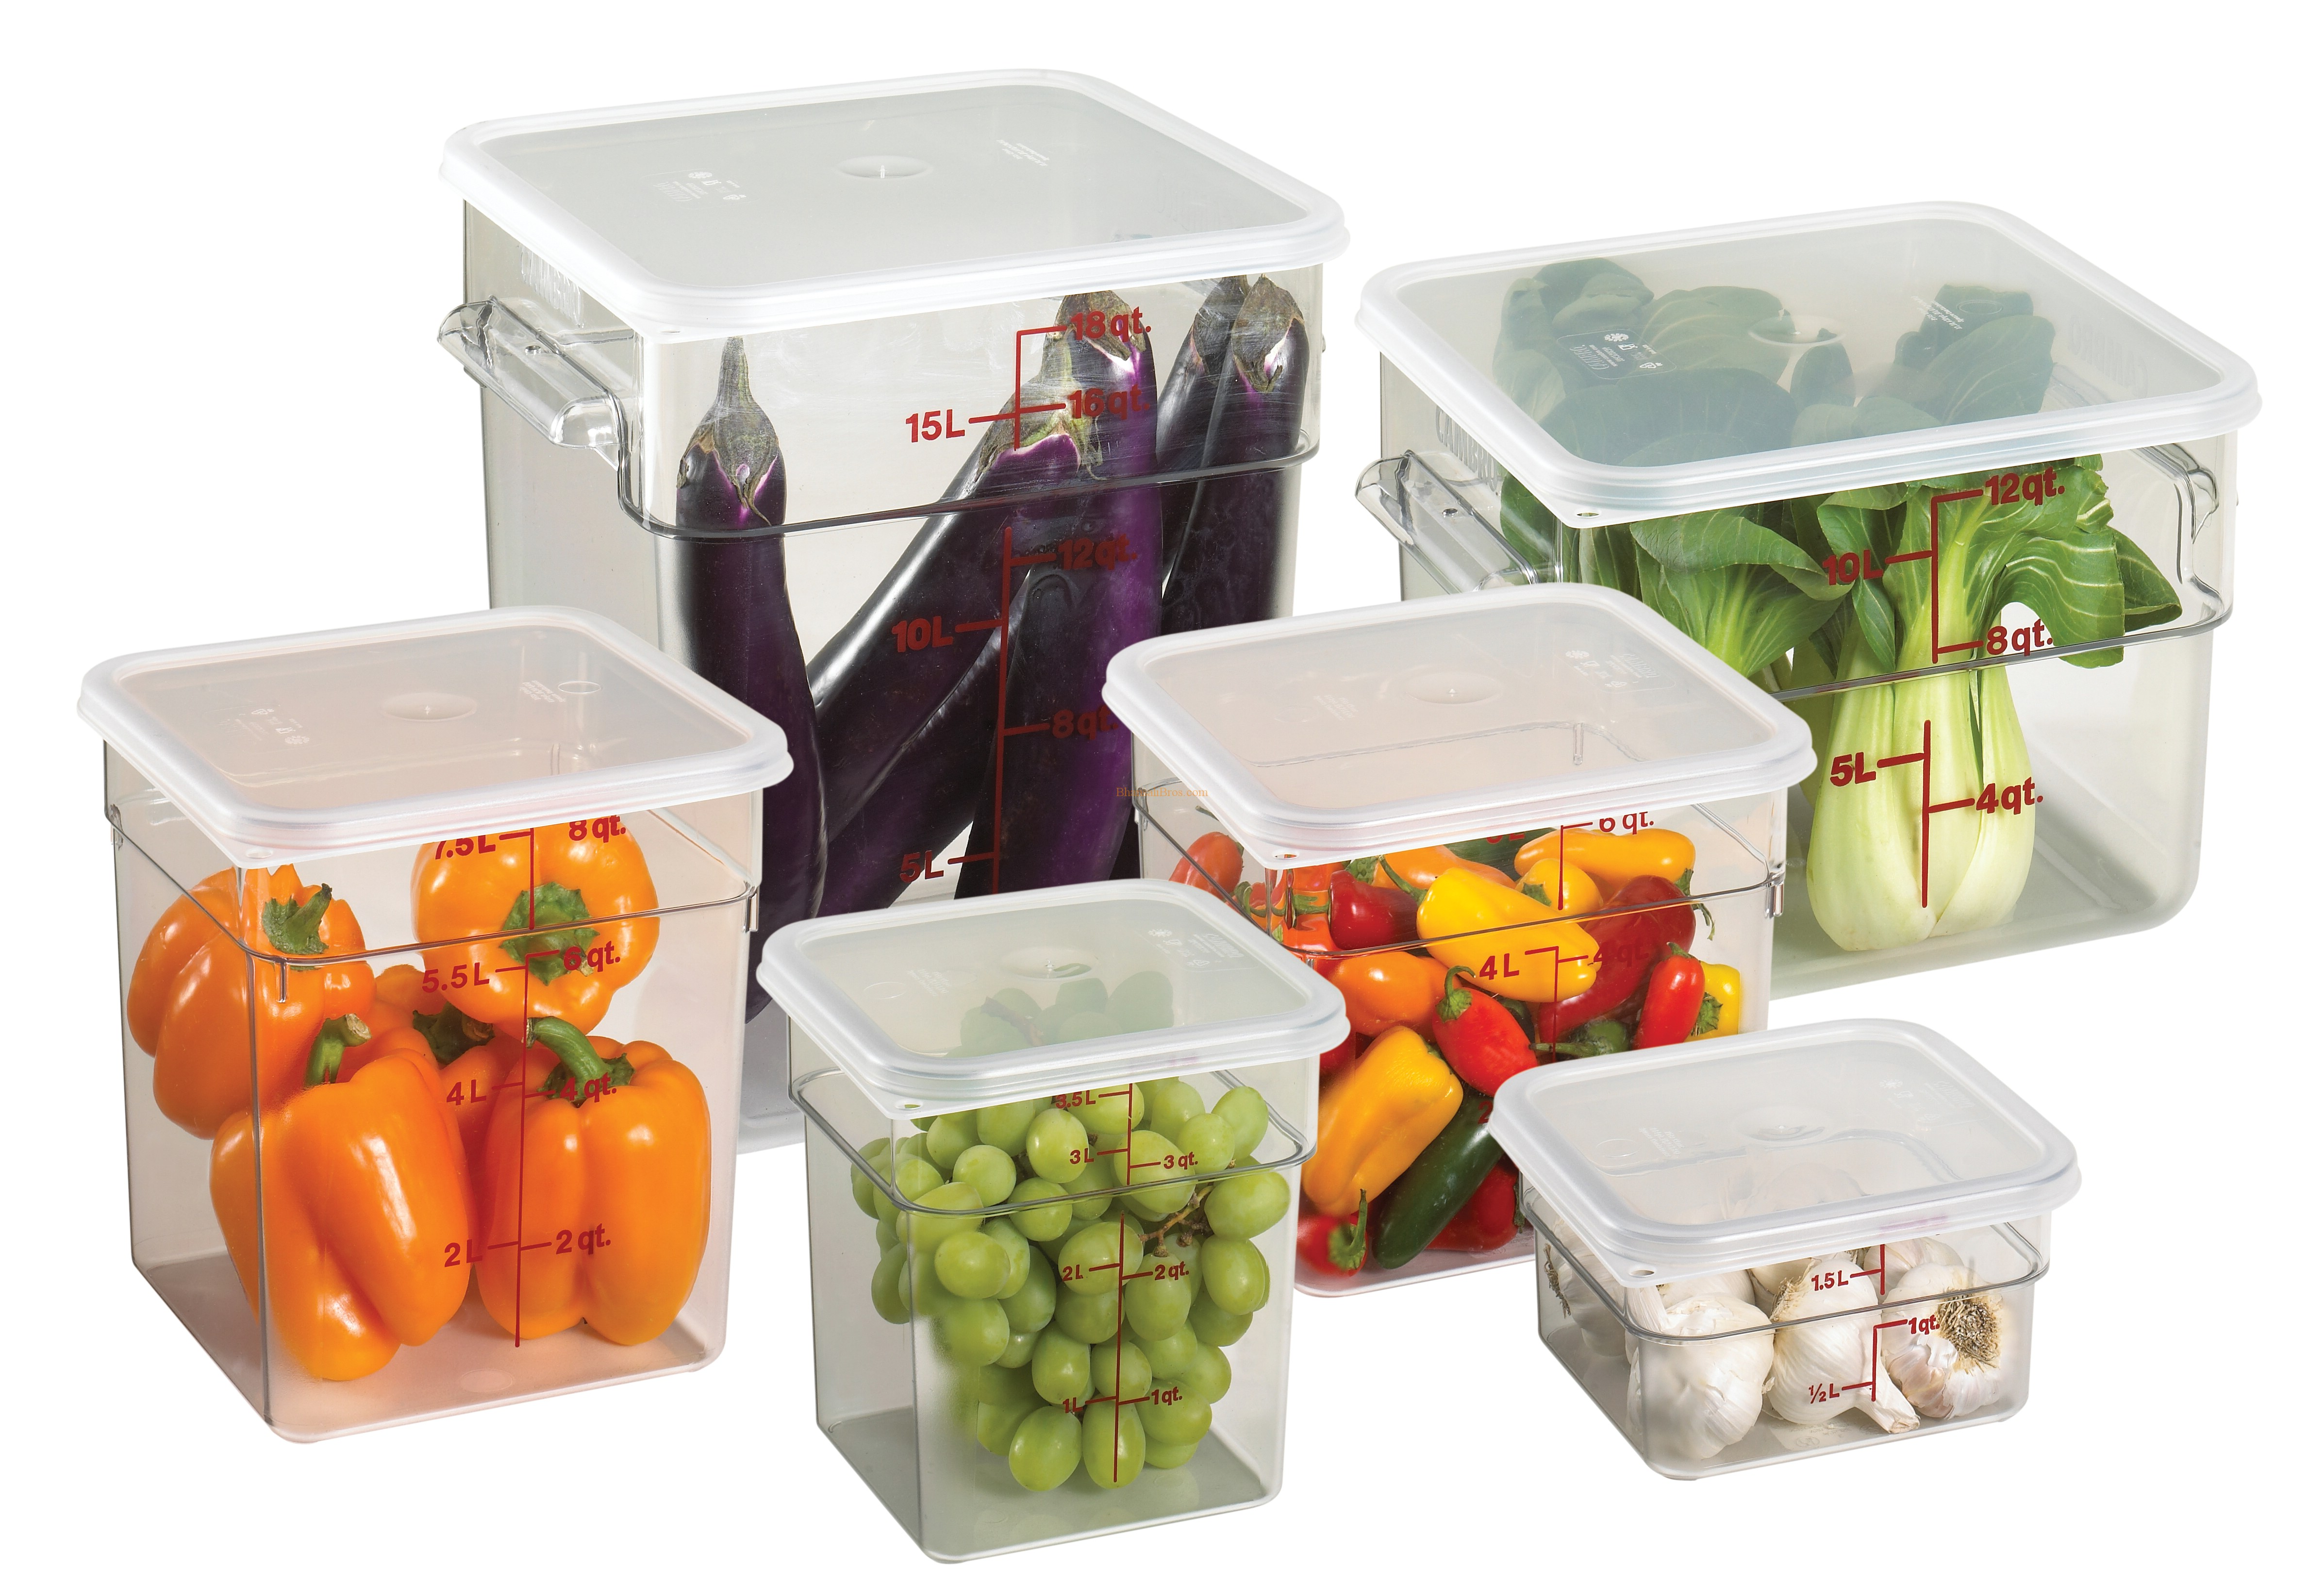 Industrial Food Container : One stop solution for commercial kitchen equipment cutlery